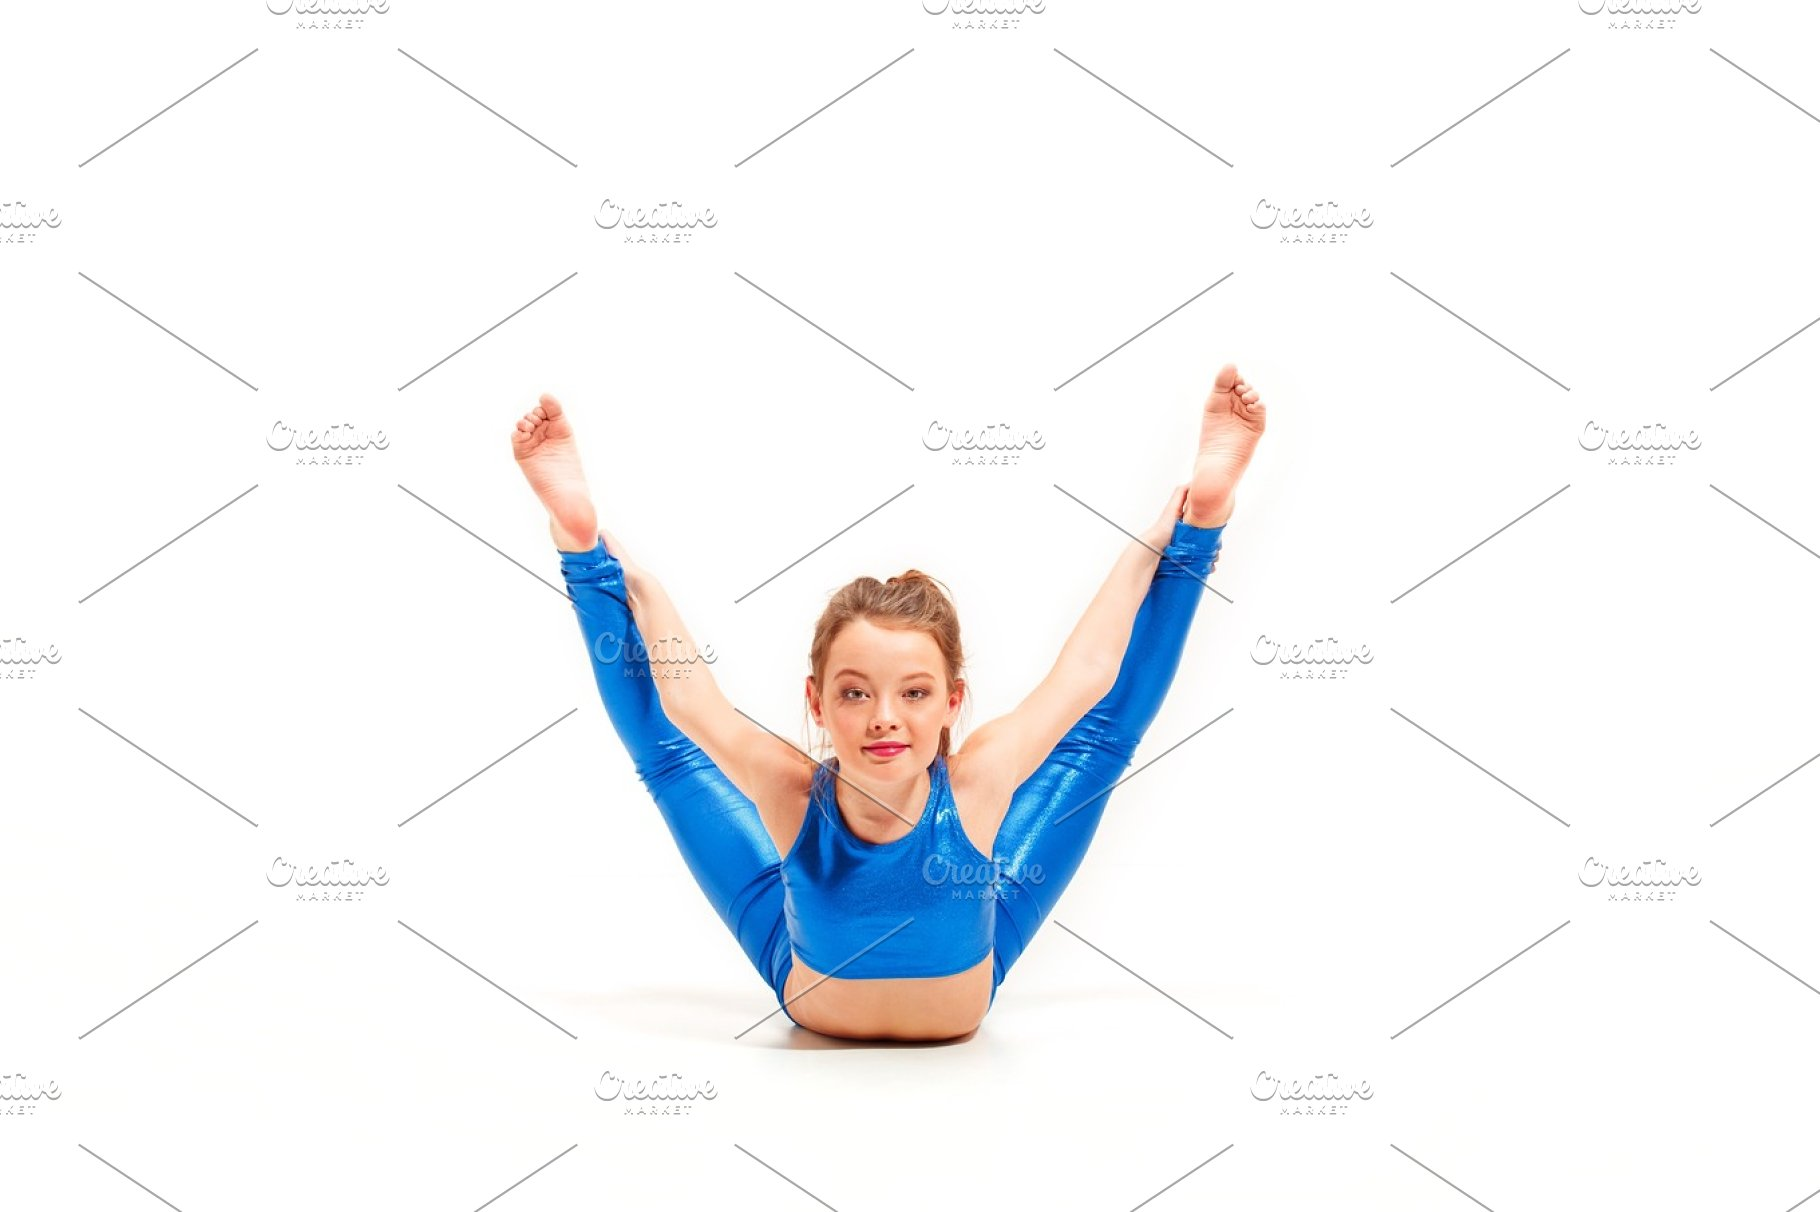 9dcf0114a The teenager girl doing gymnastics exercises isolated on white ...